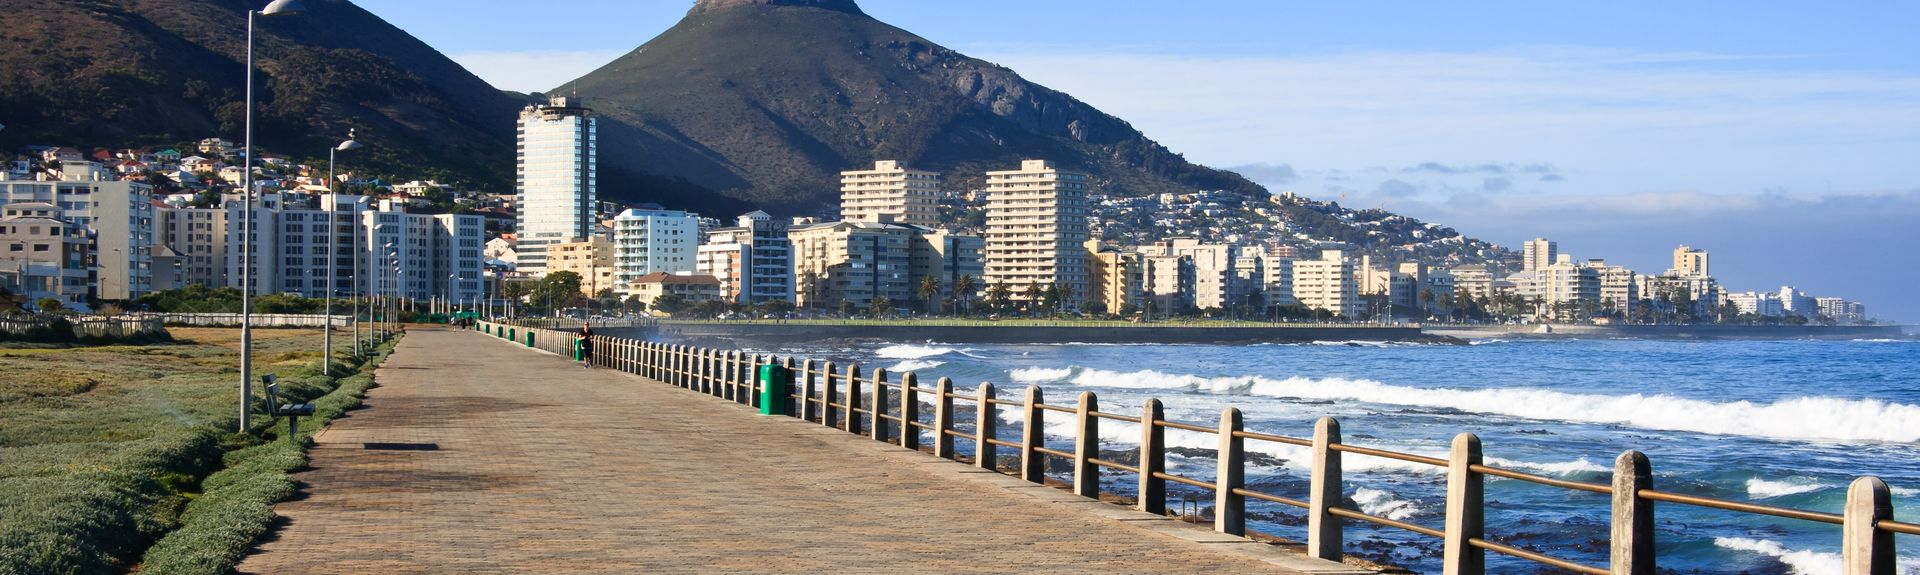 Cape Town, Western Cape (province), South Africa